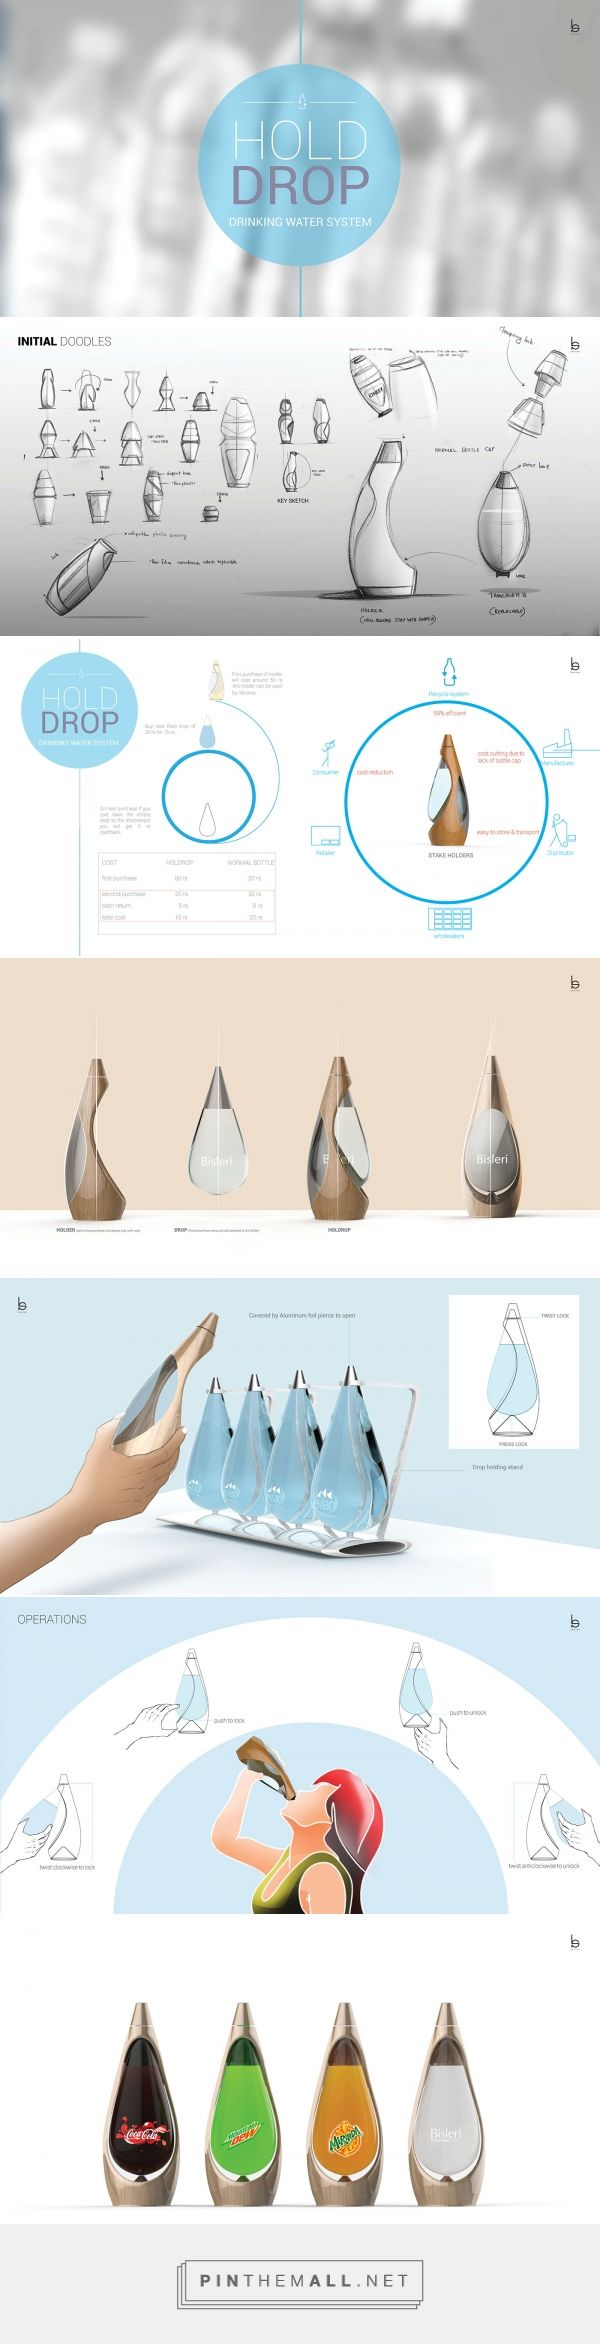 product design dissertations